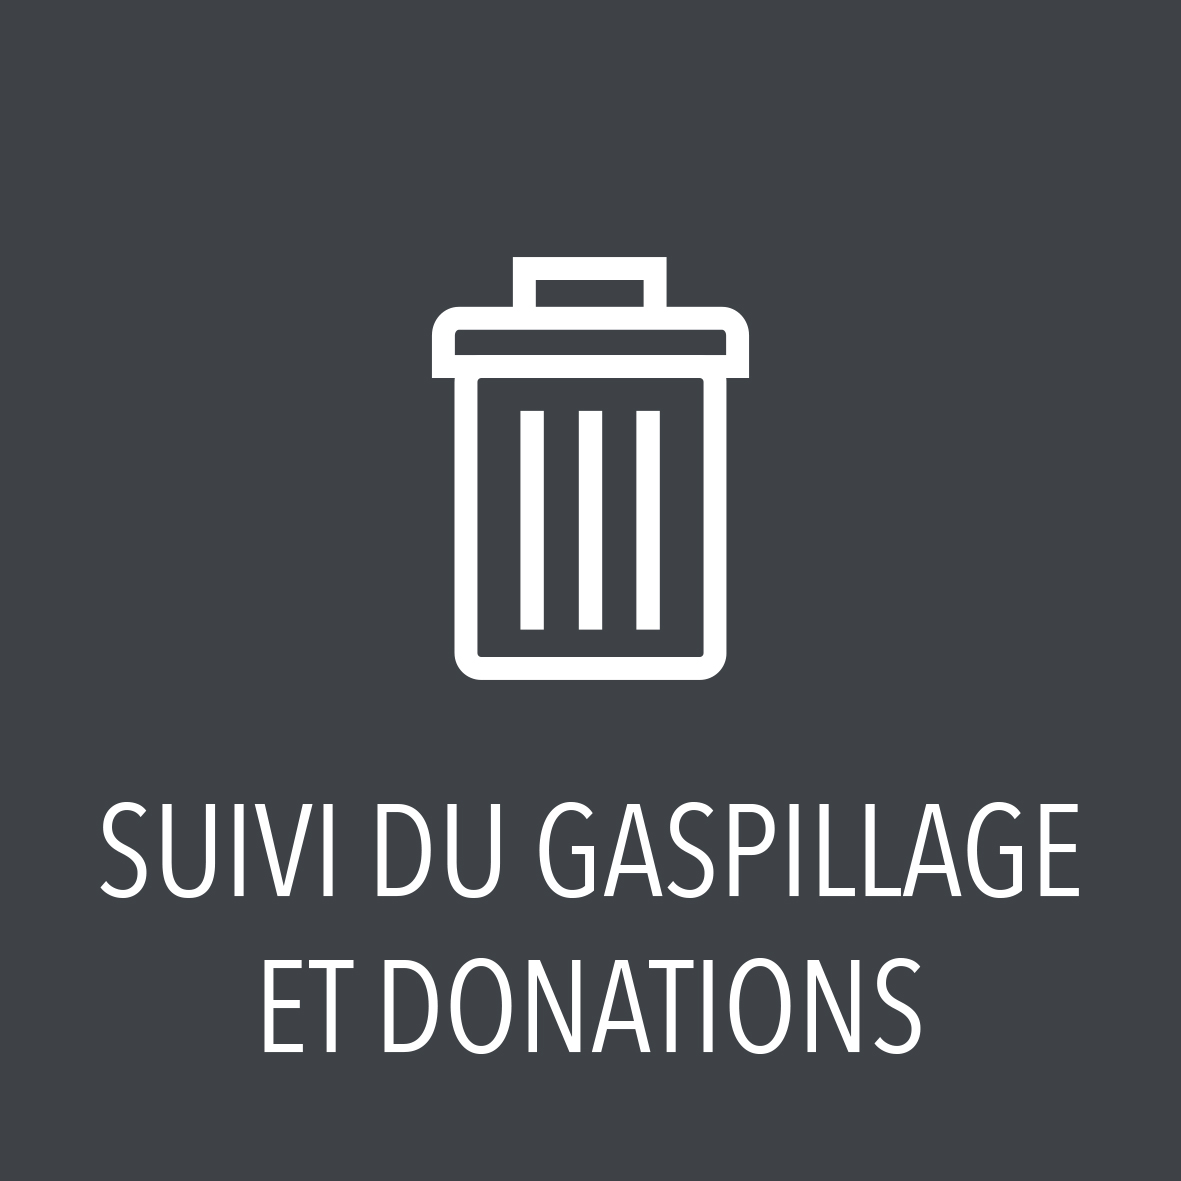 Suivi du gaspillage et donations